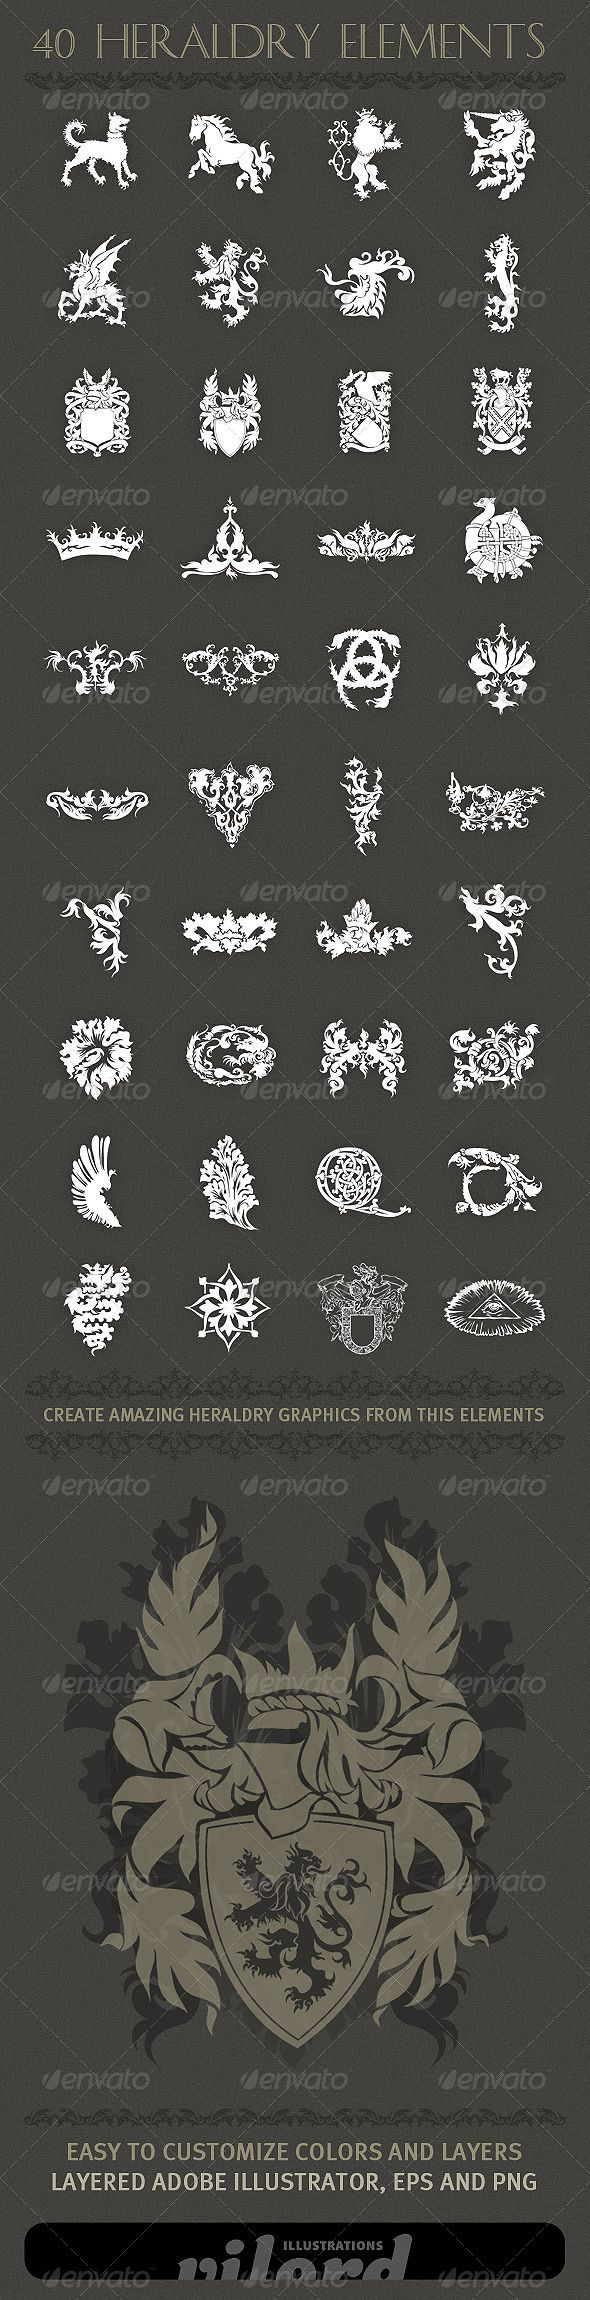 40 heraldry crest elements symbols arms and genealogy 40 heraldry crest elements biocorpaavc